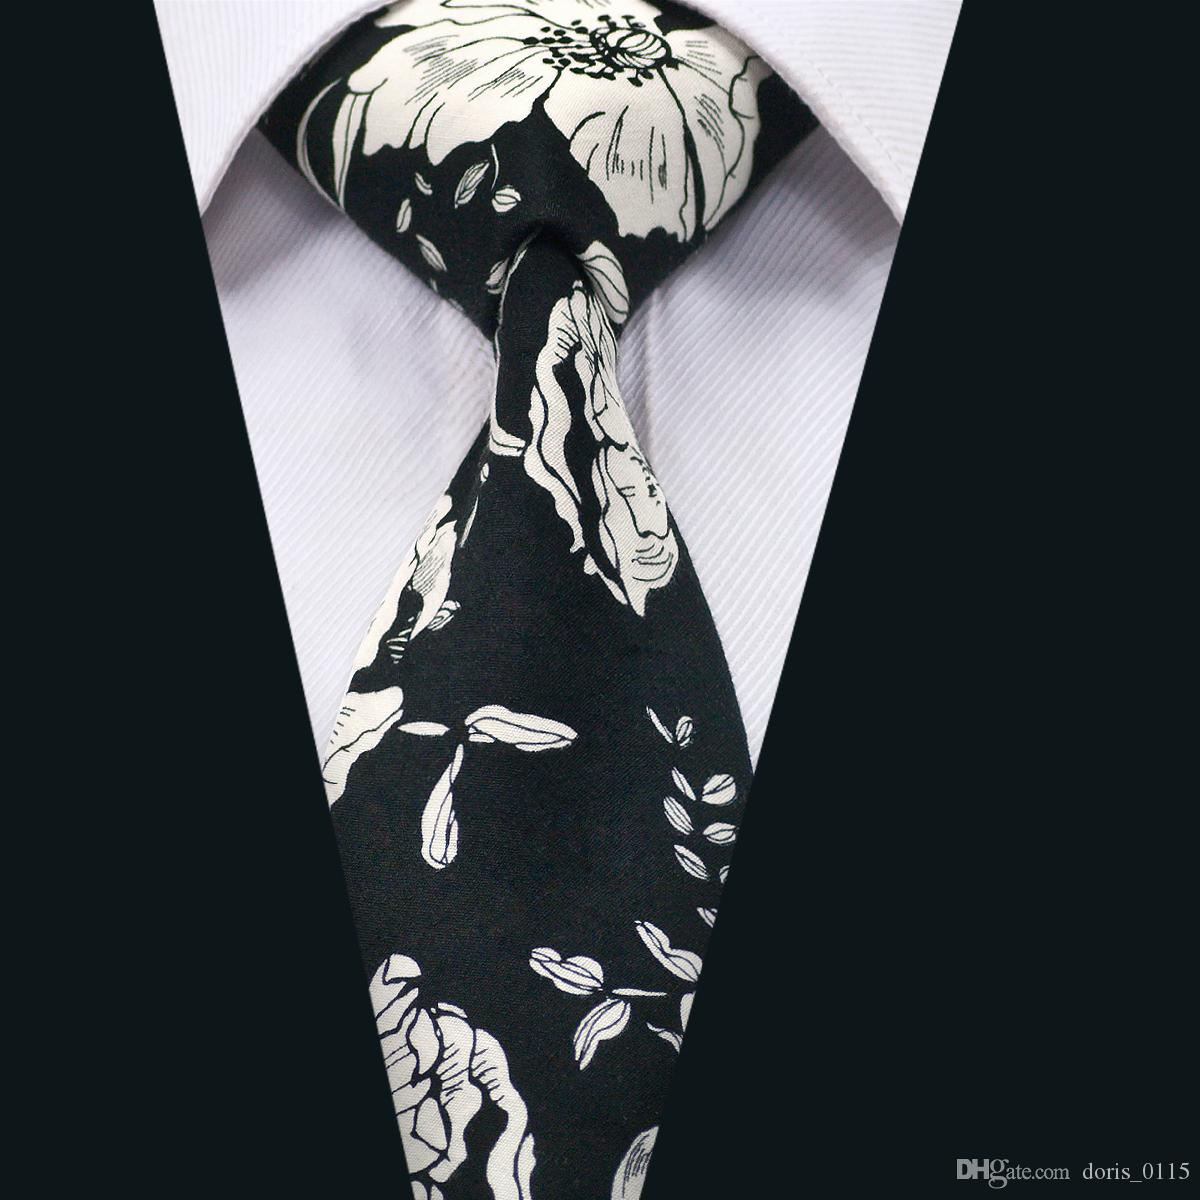 d896ebcddc38 Ties Classic Silk Men Ties Floral Cutton Mens Necktie With High Quality For  Business Wedding Party Gift D 1317 Gold Tie Gold Bow Tie From Doris_0115,  ...